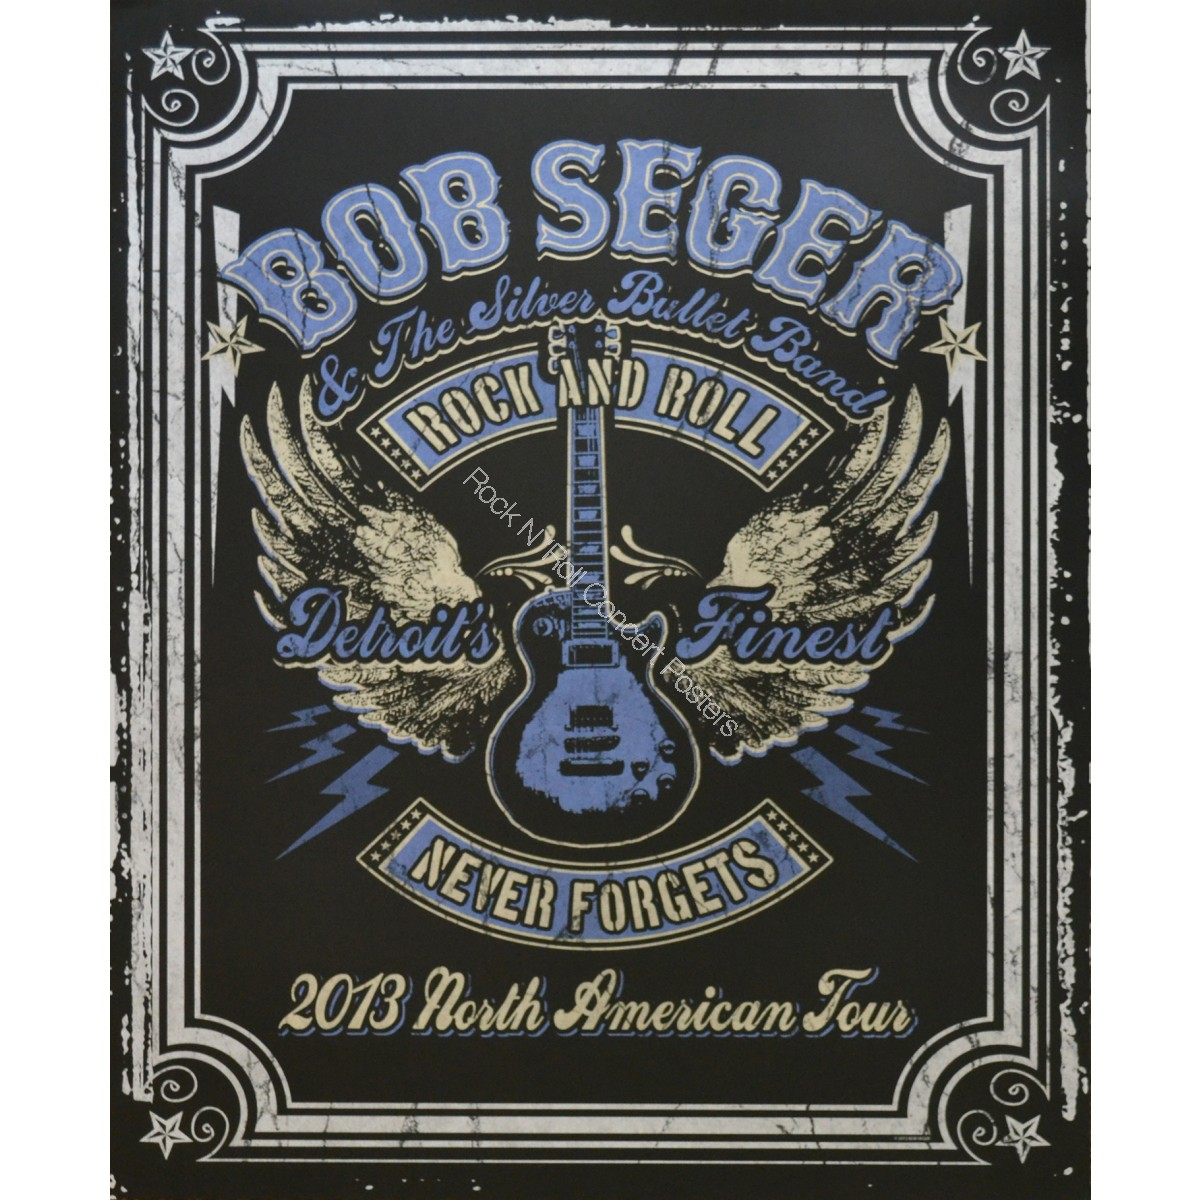 Bob Seger & The Silver Bullet Band North American Tour  2013 limited edition serigraph print